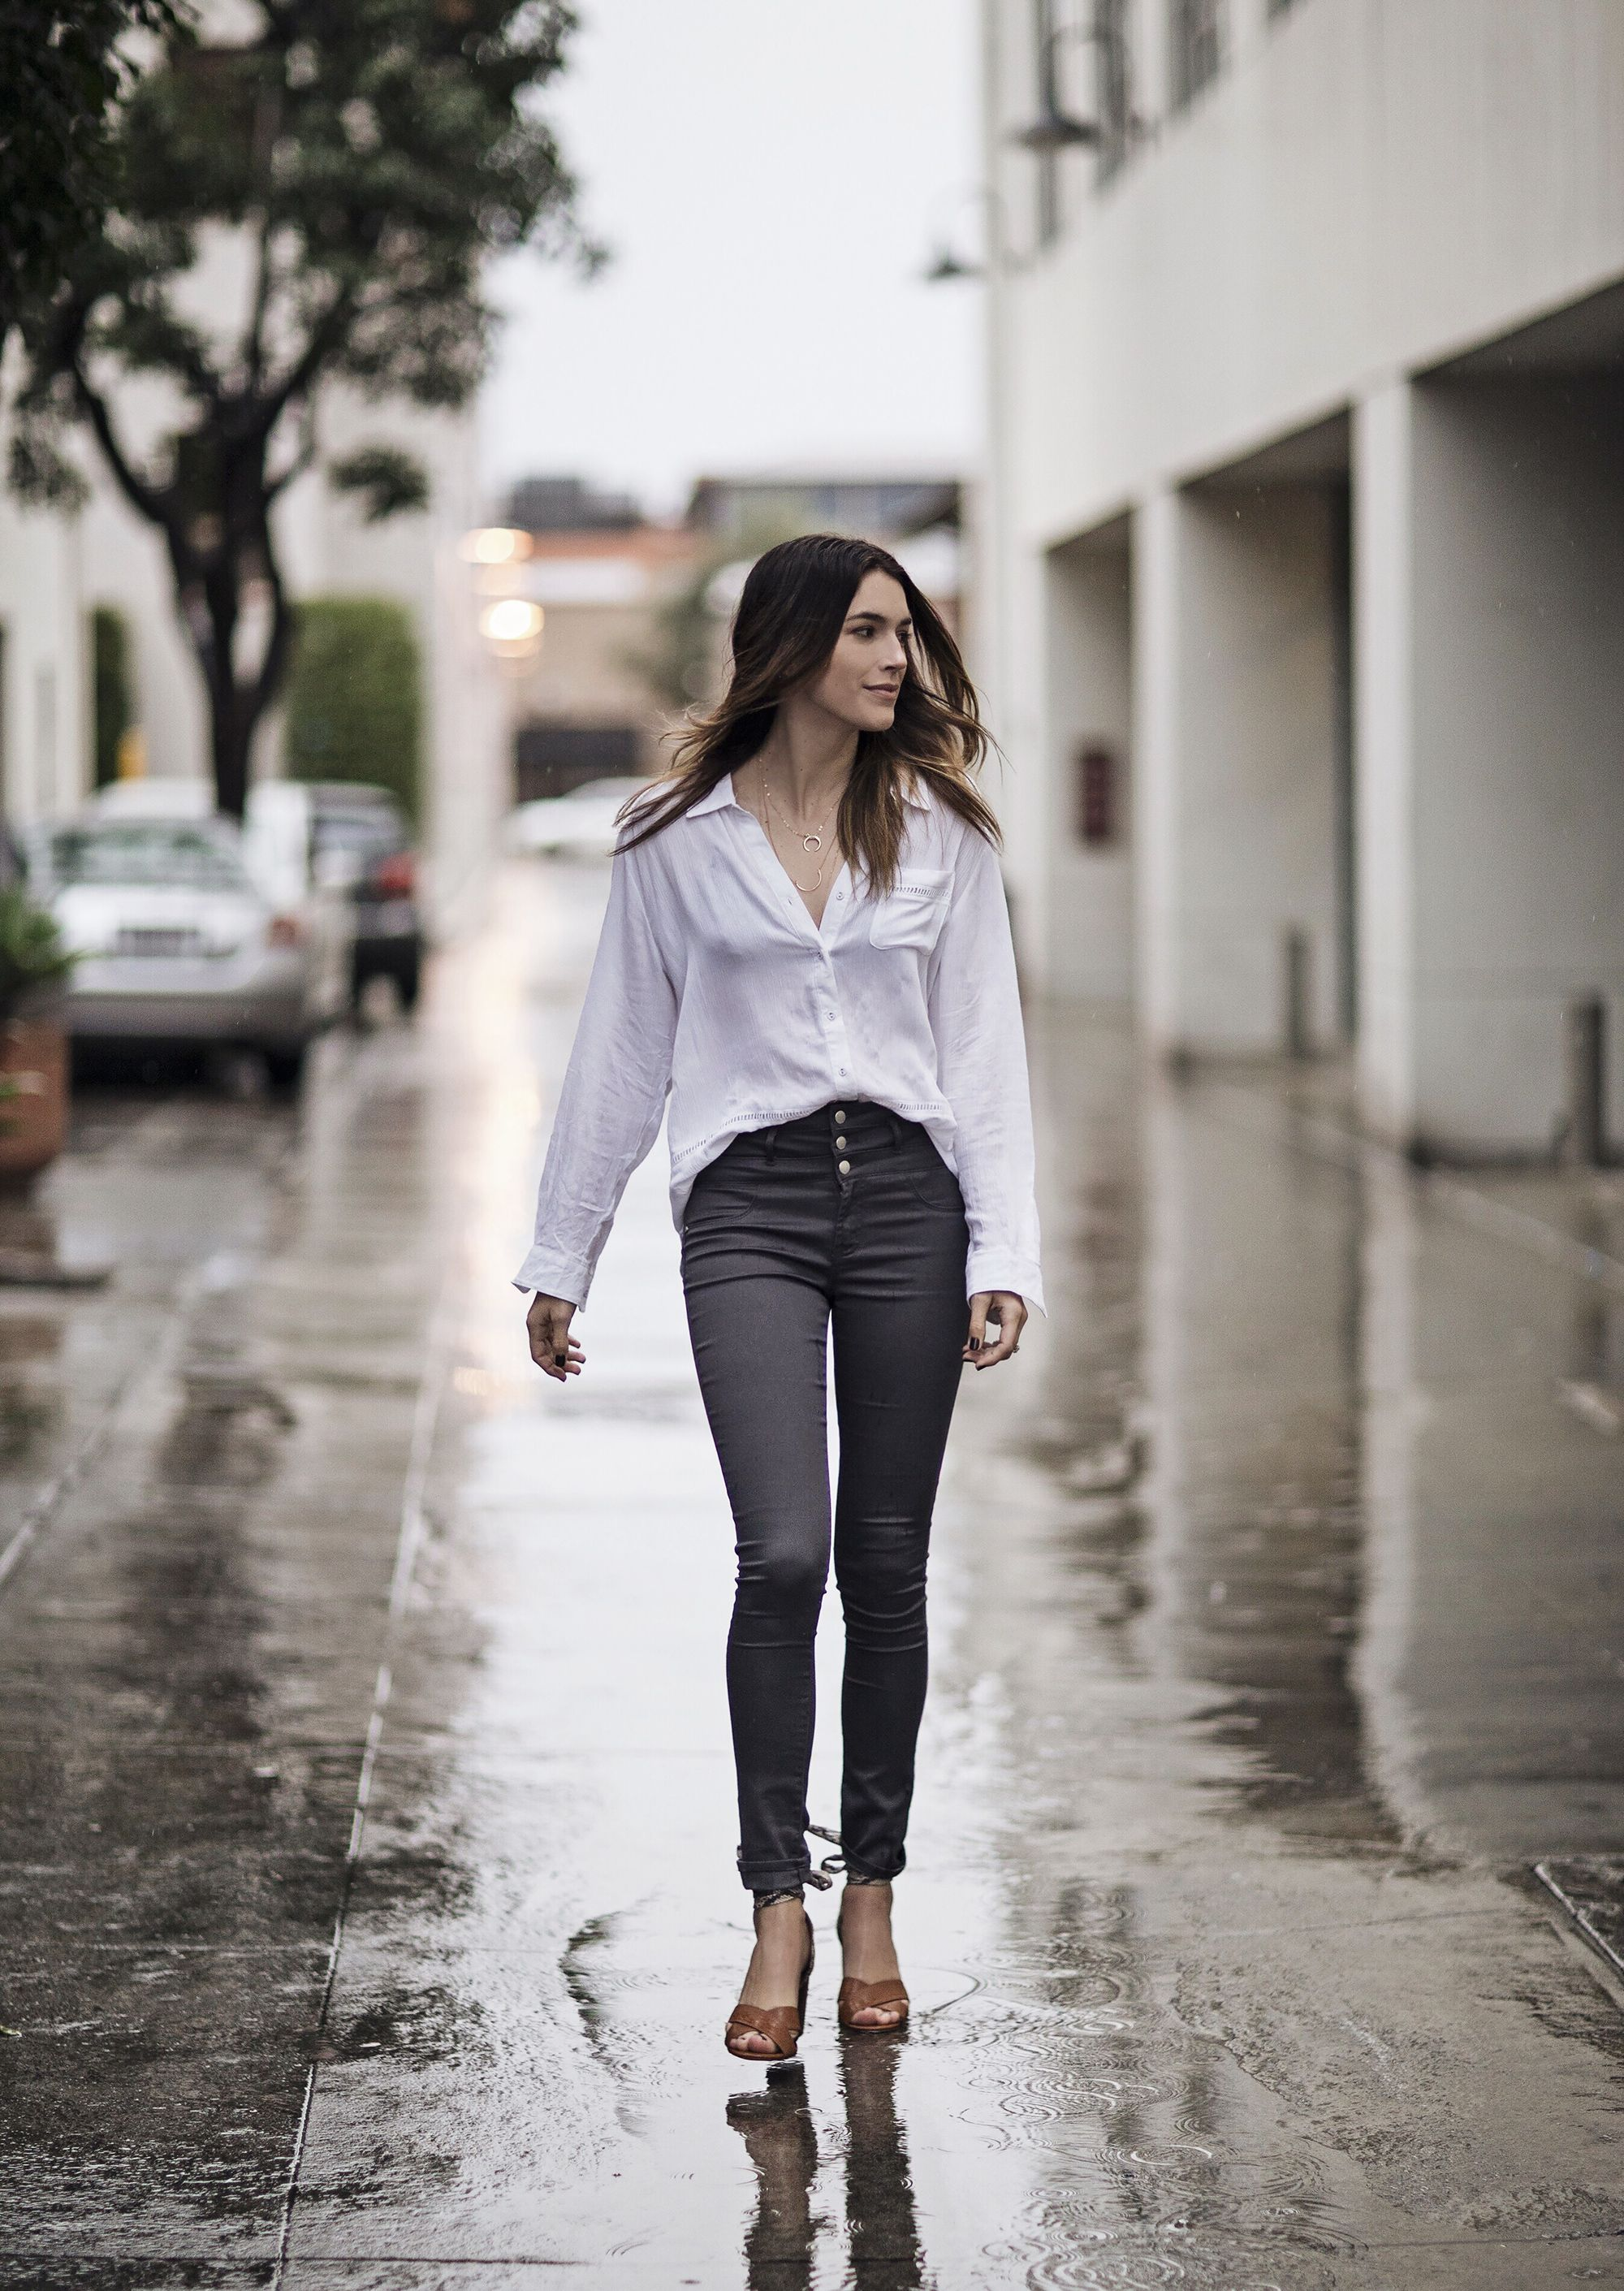 5b2413b9260 Button Up White Blouse Outfit Ideas